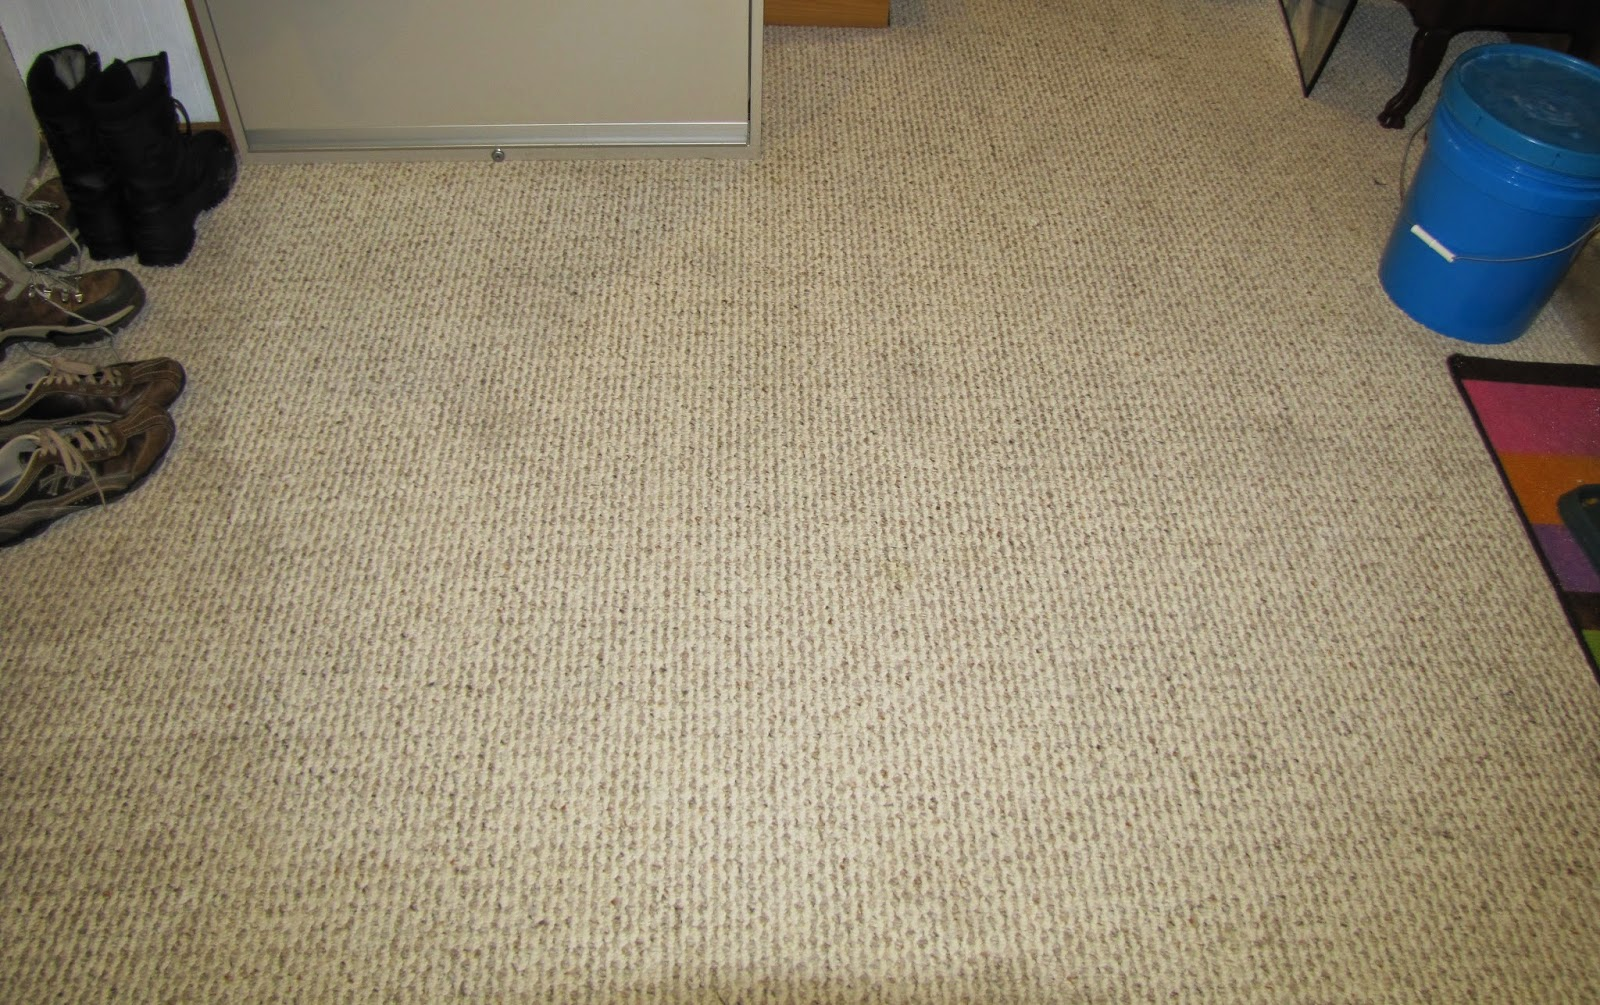 Best Carpet Cleaner And Stain Remover: Genesis 950 - The ...